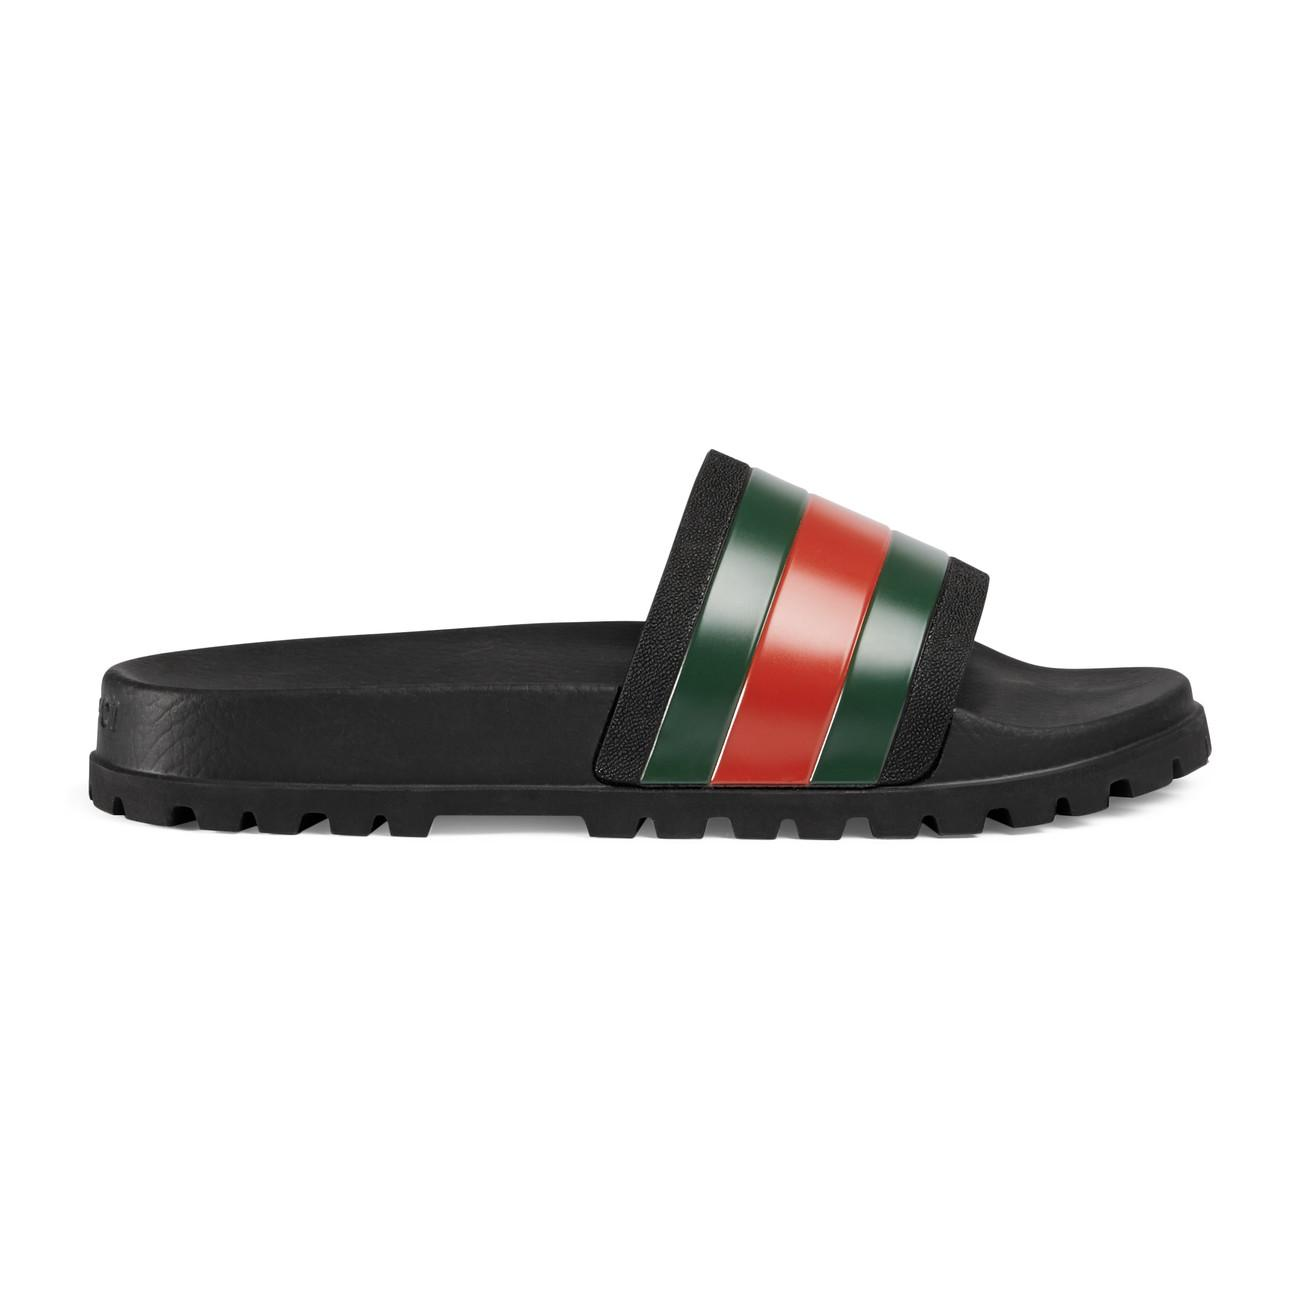 b5245e4c02e Lyst - Gucci Web Slide Sandal in Black for Men